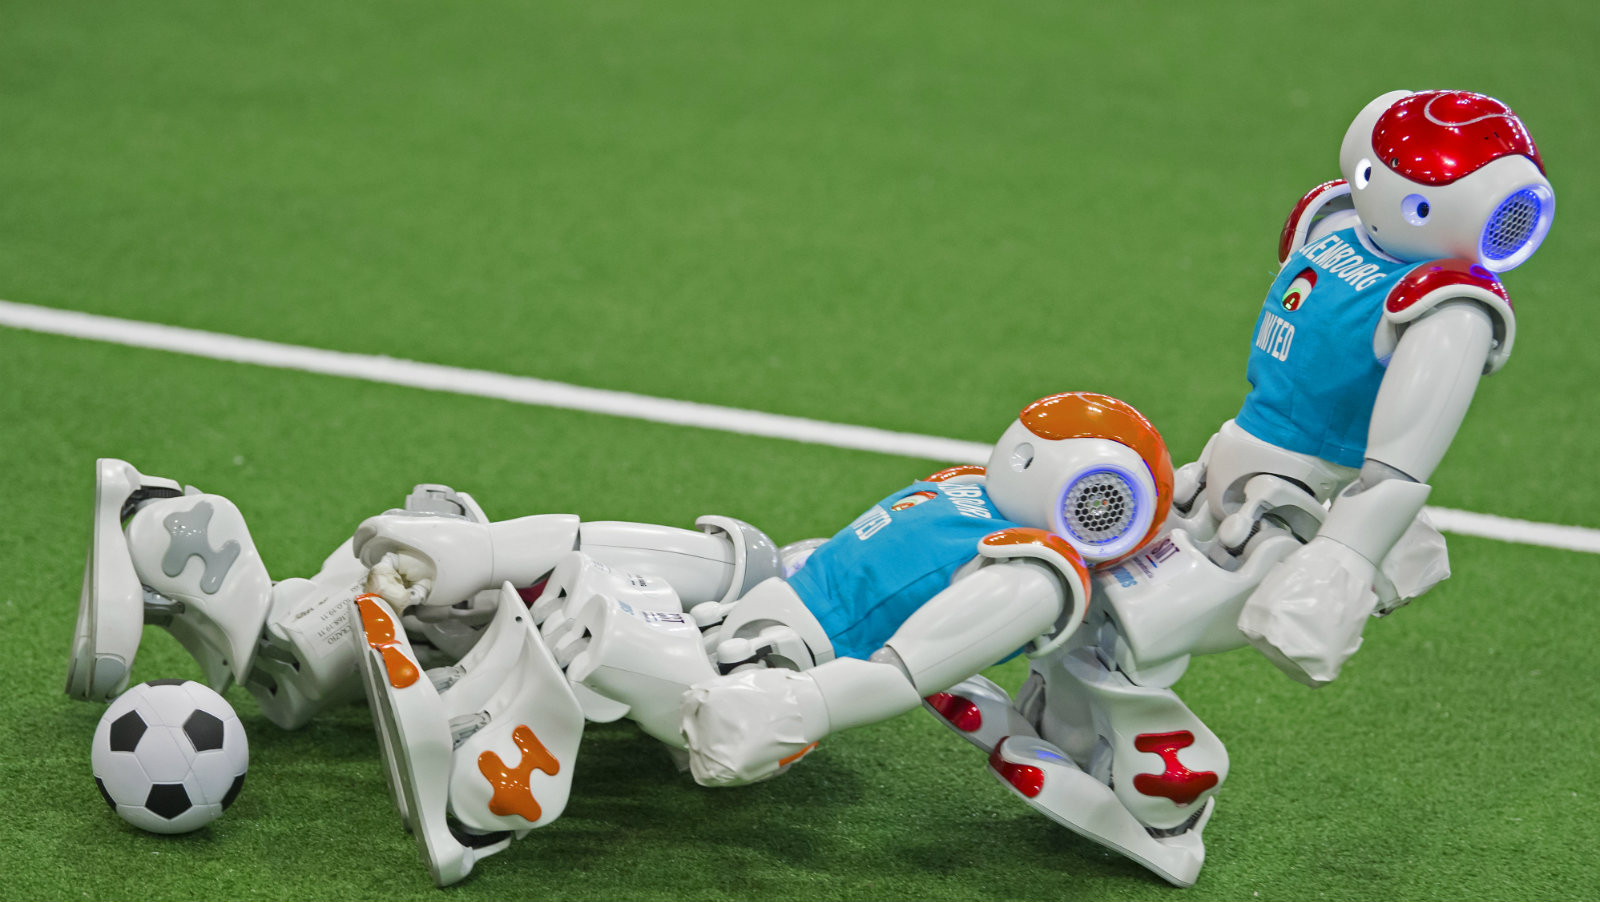 A robot of the Italian team 'nomadZ', red shirt left, challenges for the ball against robots of the Luxenbourg team, blue shirts, during a soccer match of the Standard Platform Liga competition at the RoboCup GermanOpen 2017 in Magdeburg, Germany, Sunday, May 7, 2017. Around 200 teams with more than 1,000 participants from 15 countries demonstrate the state-of-the-art in robotics with competitions such as in soccer, rescue and service robots.